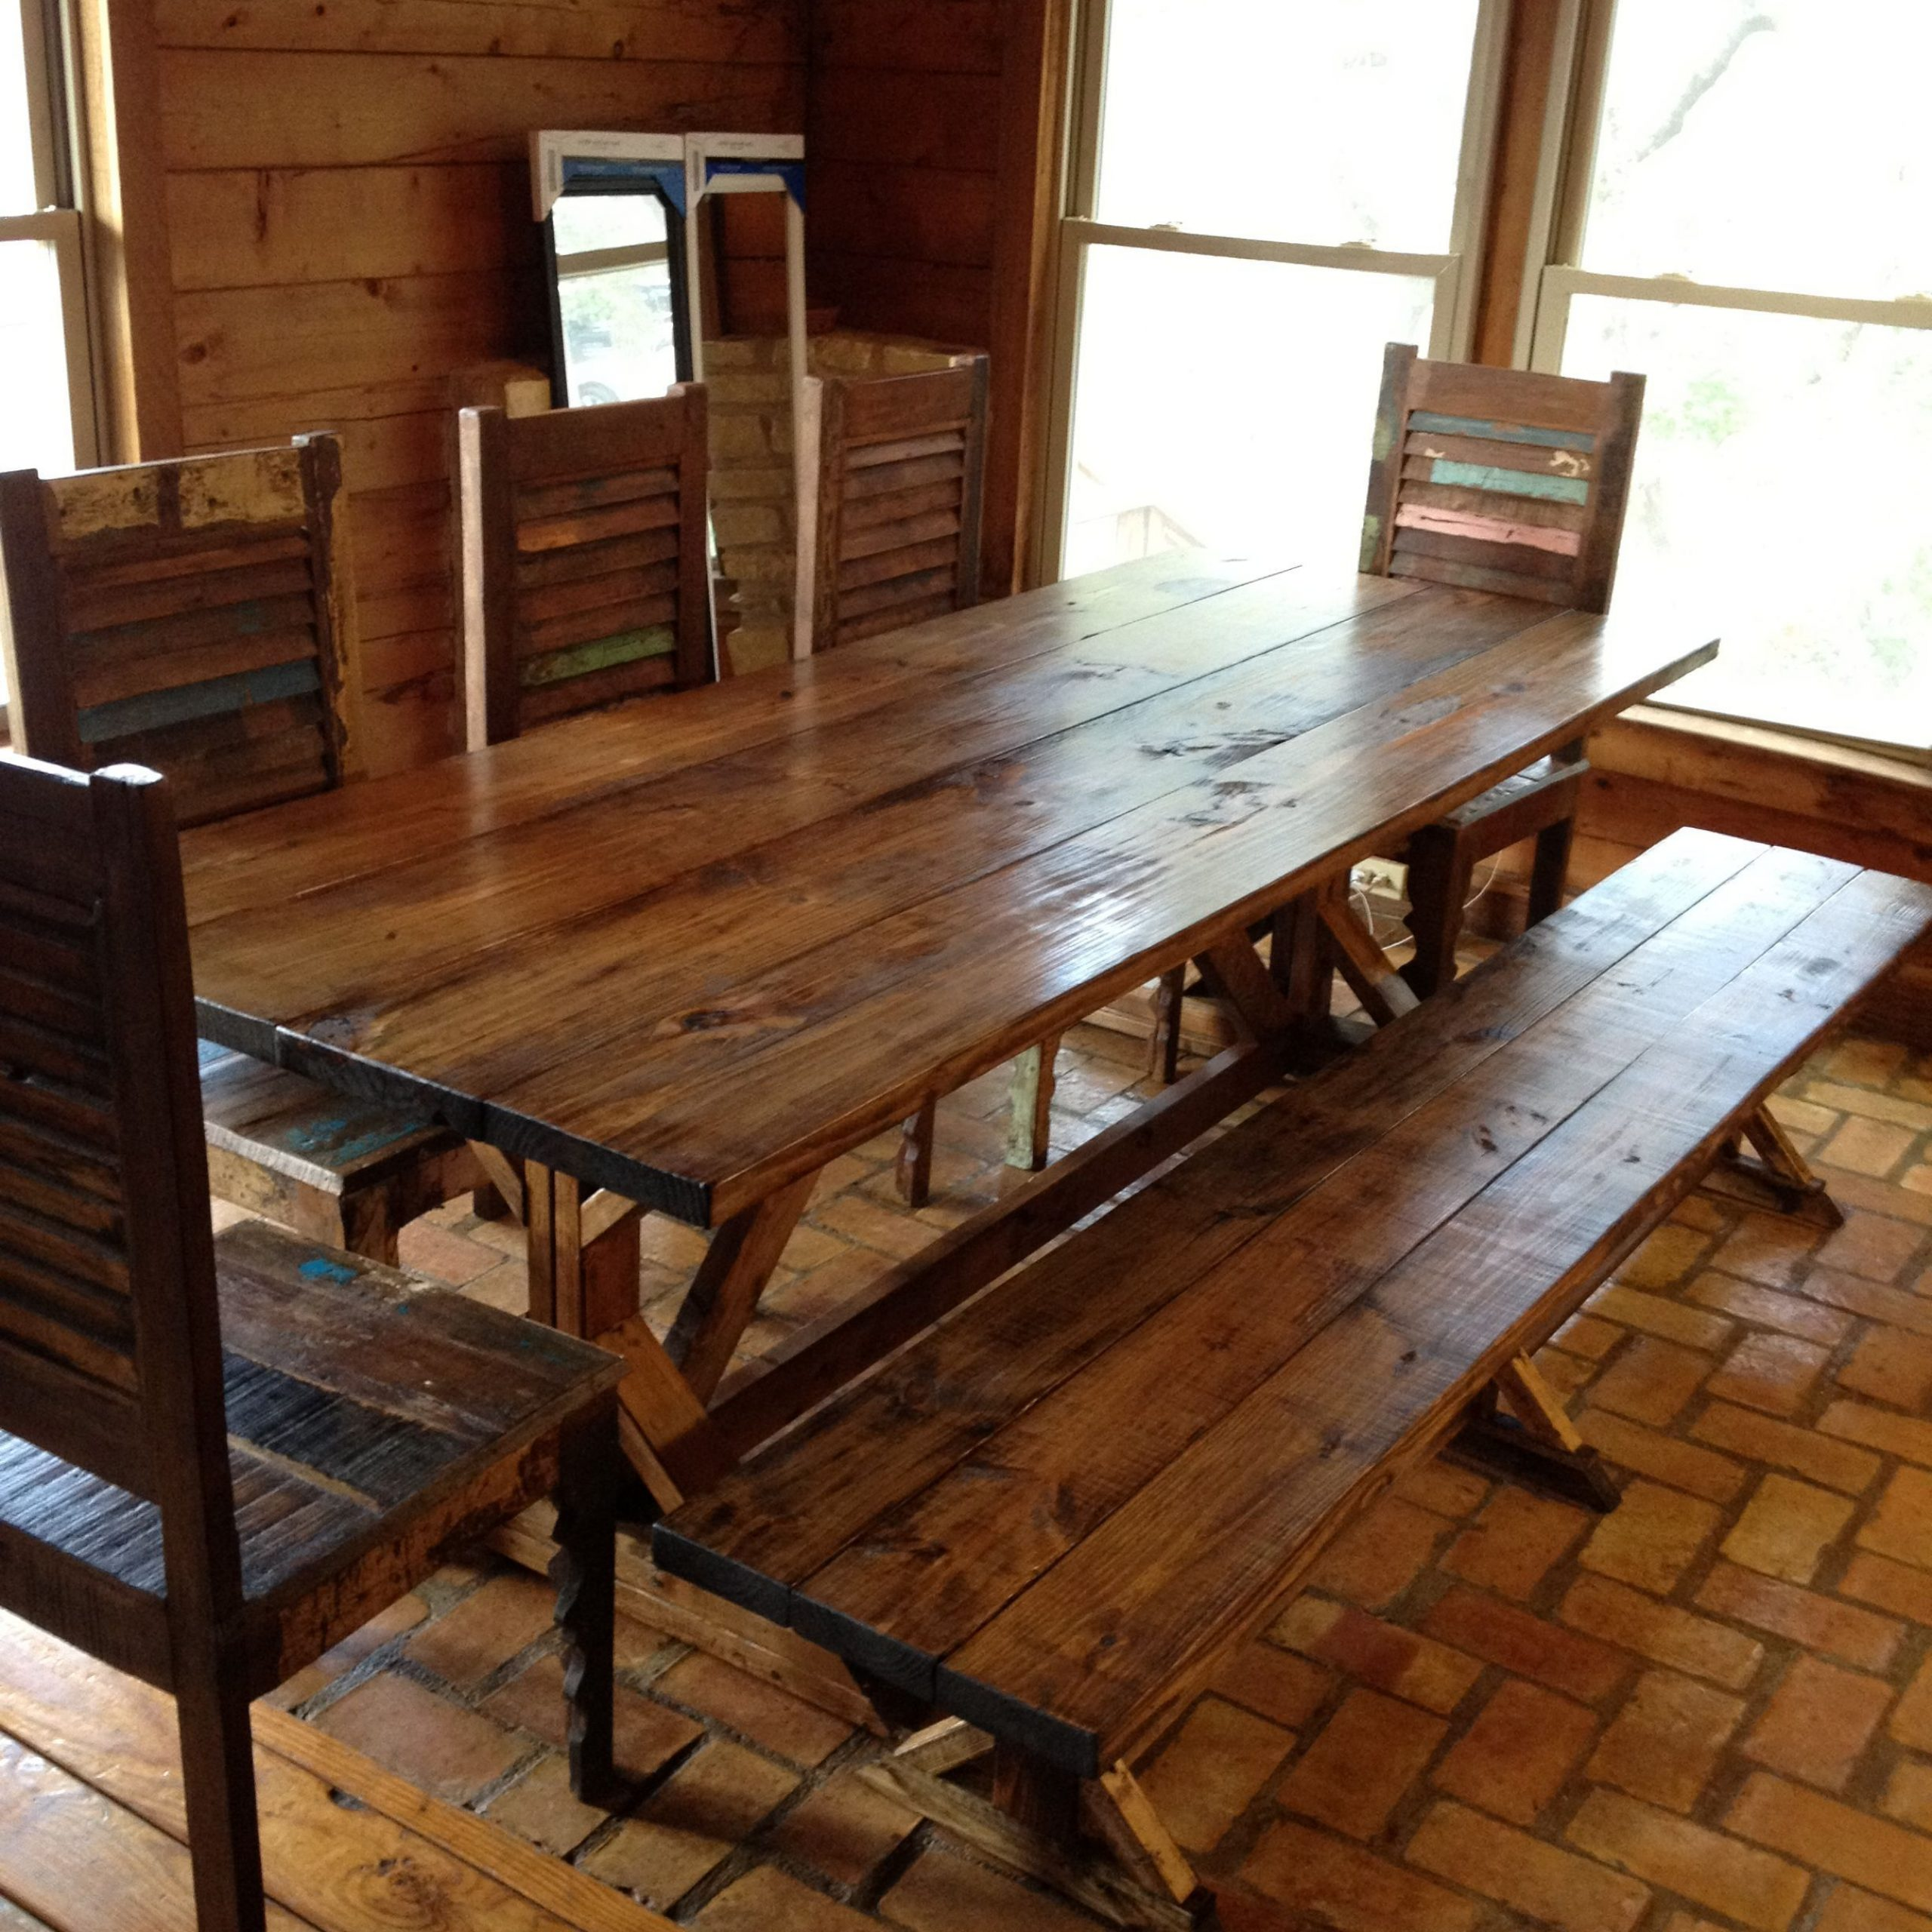 Rustic Dining Tables With Benches Rustic Dining Table Picnic intended for Most Up-to-Date Small Rustic Look Dining Tables